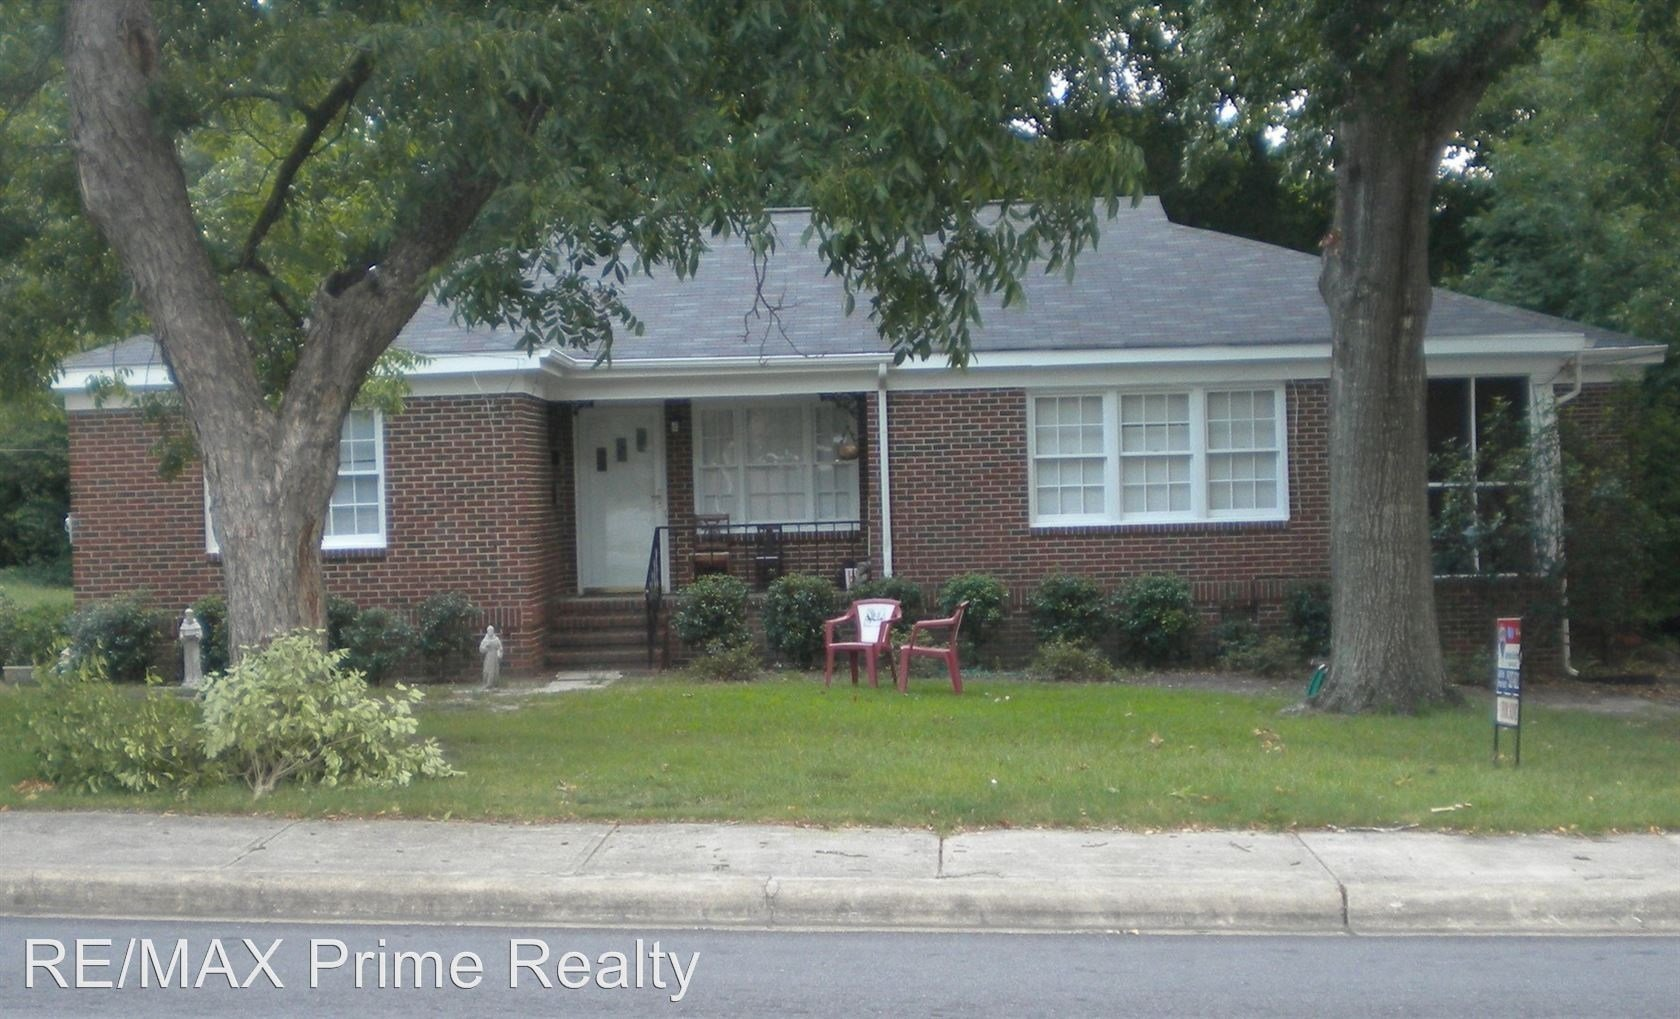 Best 4104 Armour Ave B Columbus Ga 31904 1 Bedroom House For Rent For 500 Month Zumper With Pictures